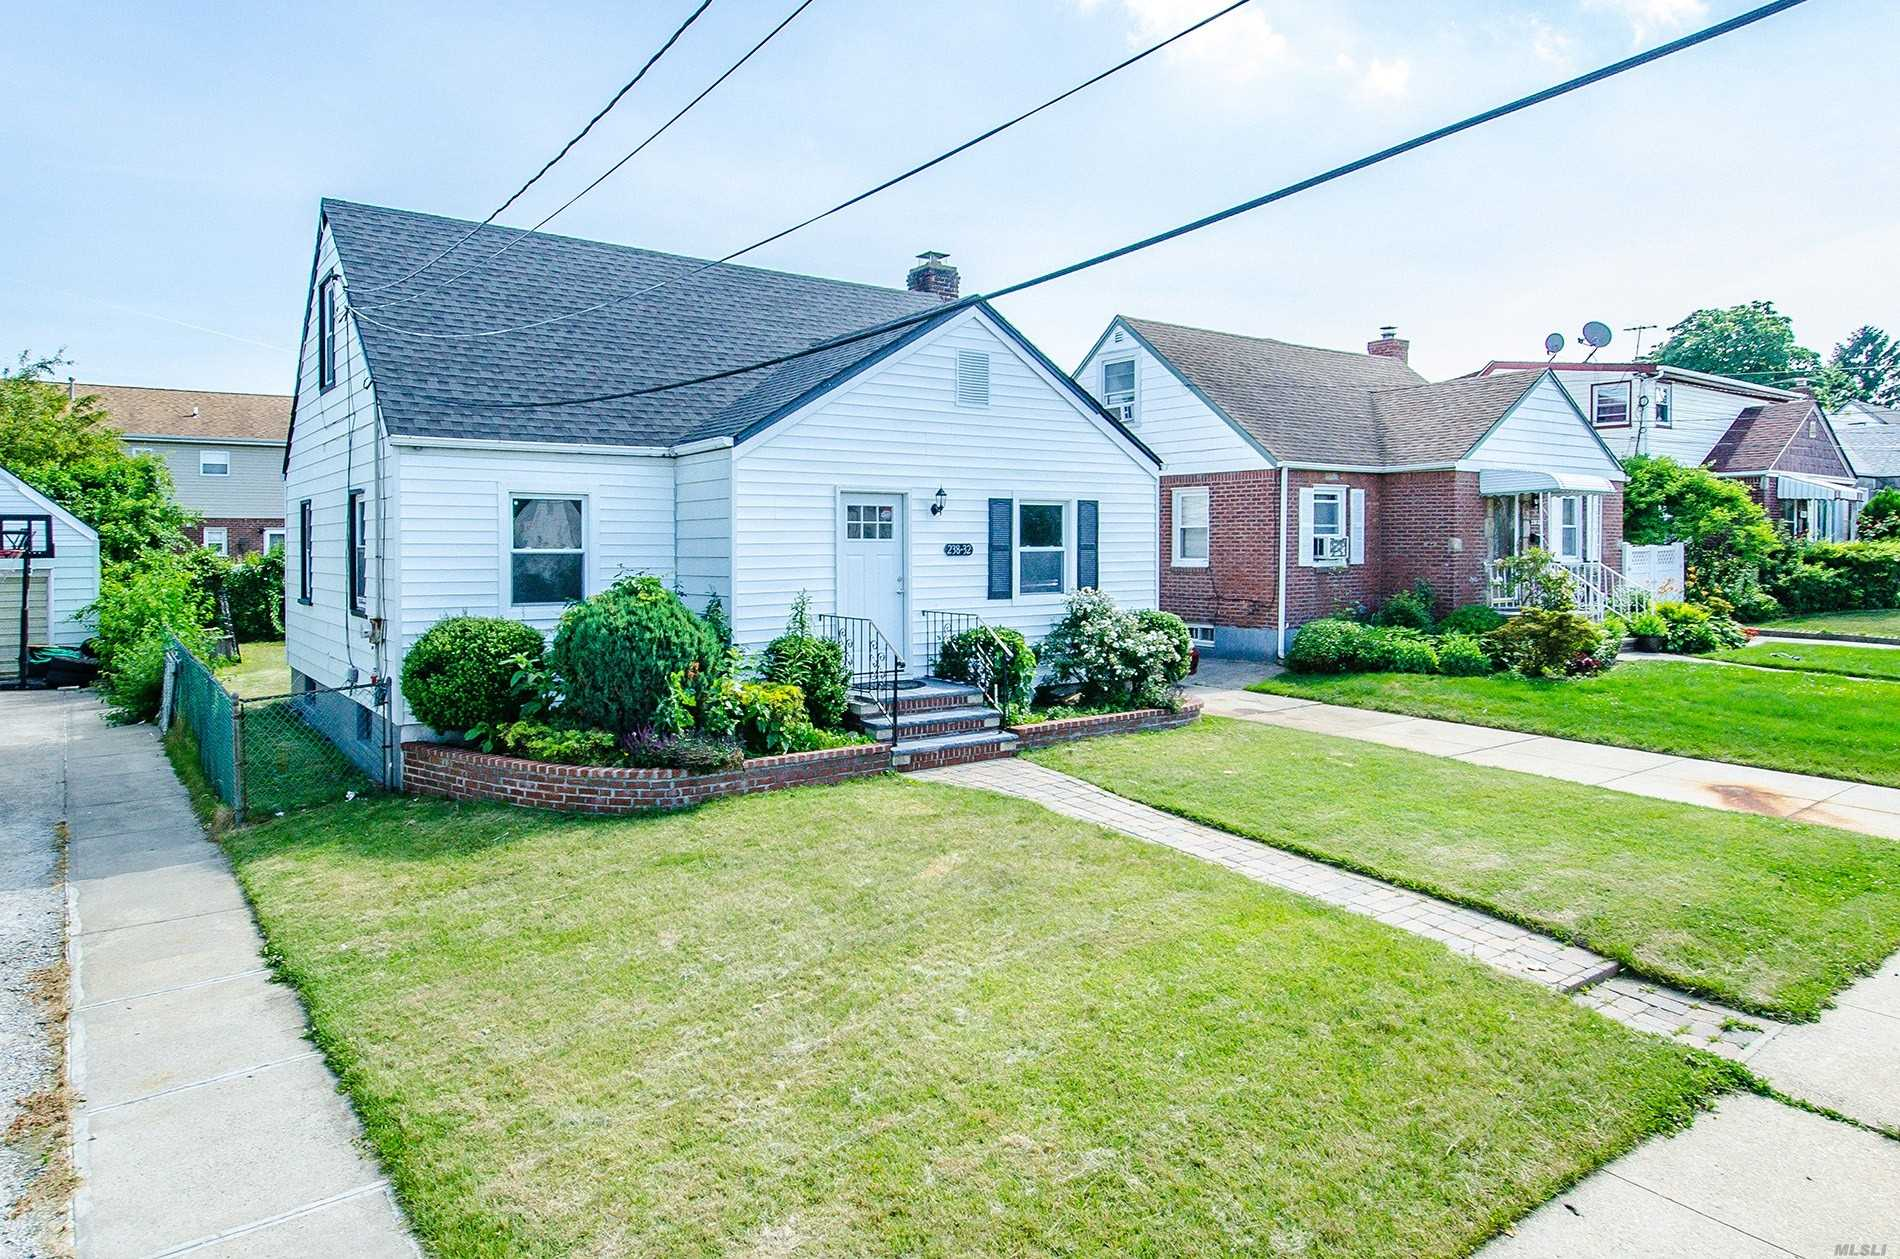 Completely Updated Expanded Cape. Private Yard Detached Garage. Sliders From Kitchen Onto Porch. Plenty Of Room For Everyone. New Everything Kitchen, Baths, Floors, Appliances, Full Finished Heated Basement With Ose. Near All